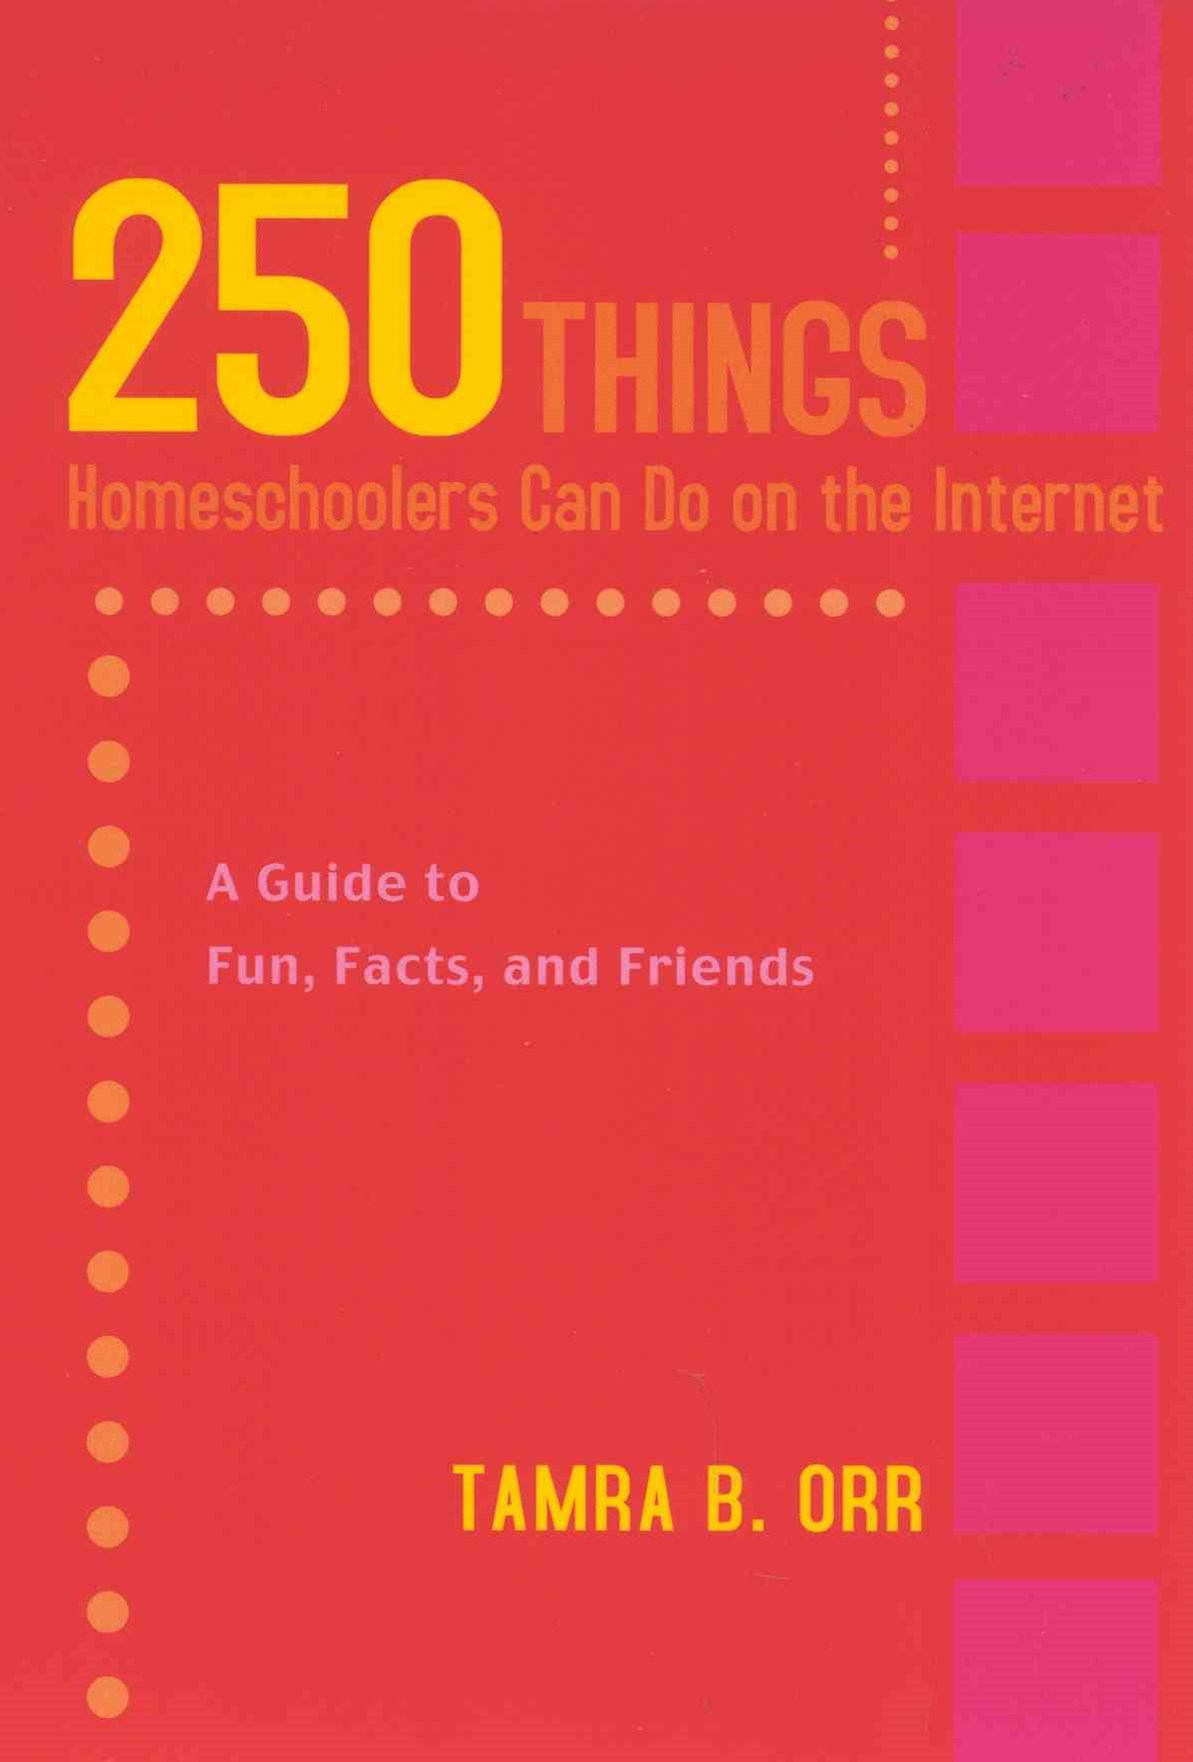 250 Things Homeschoolers Can Do on the Internet